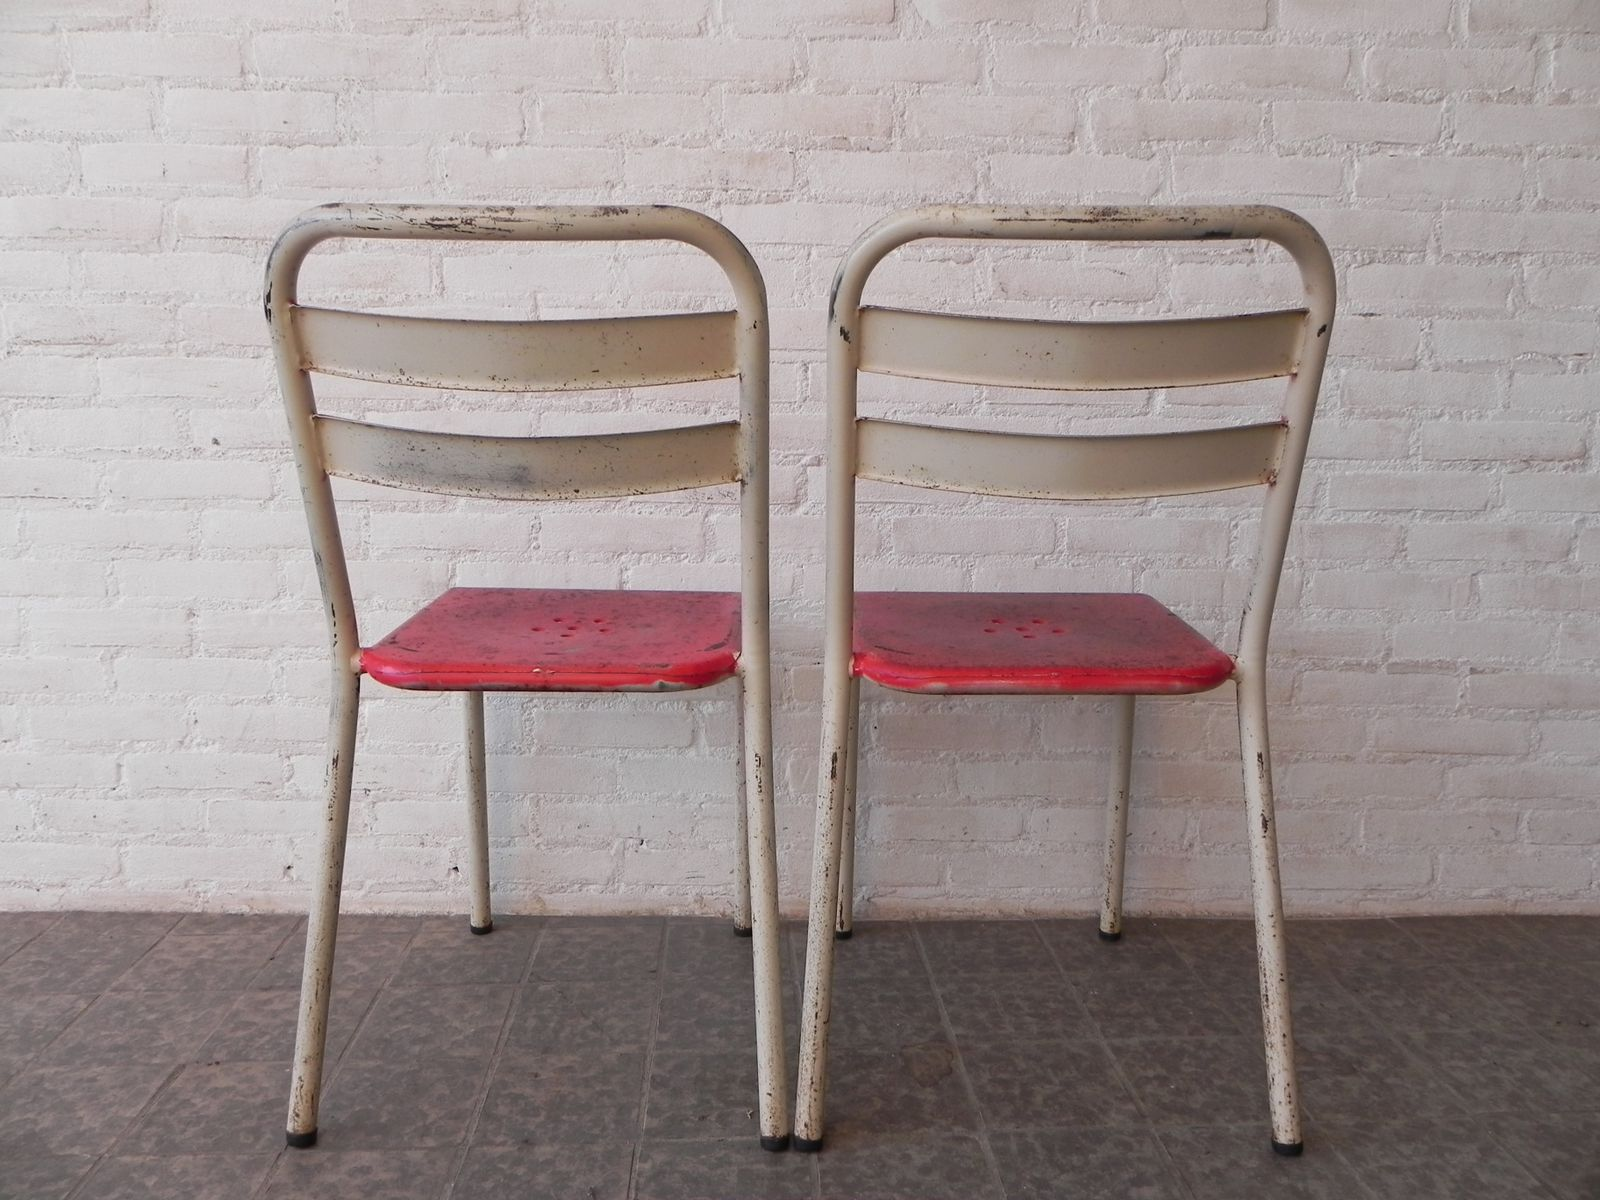 Steel Industrial Cafe Chairs 1950s Set of 2 for sale at Pamono